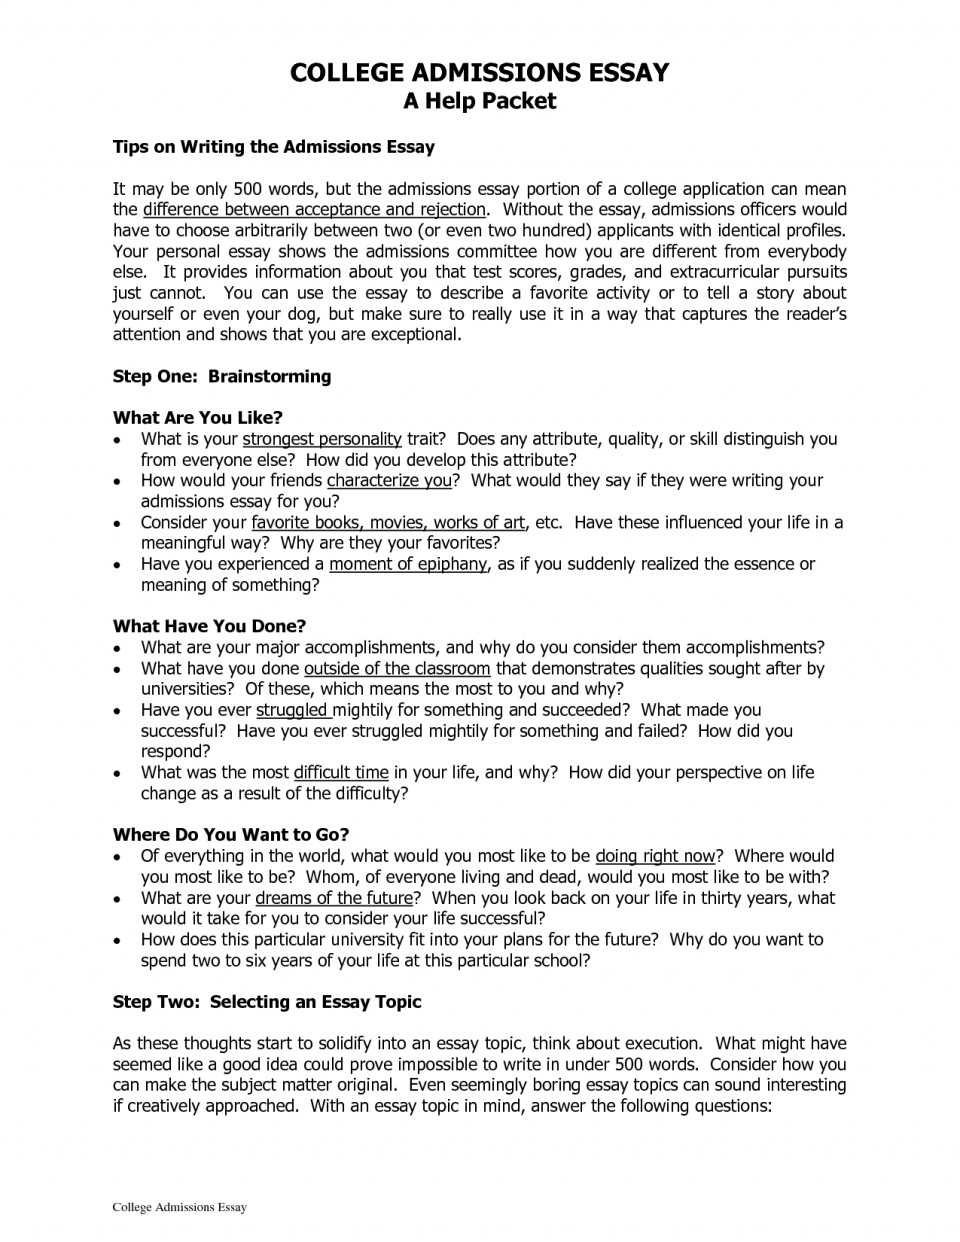 005 College Admissions Essay Exceptional Essays That Worked 12 Admission Format Heading Sample 960